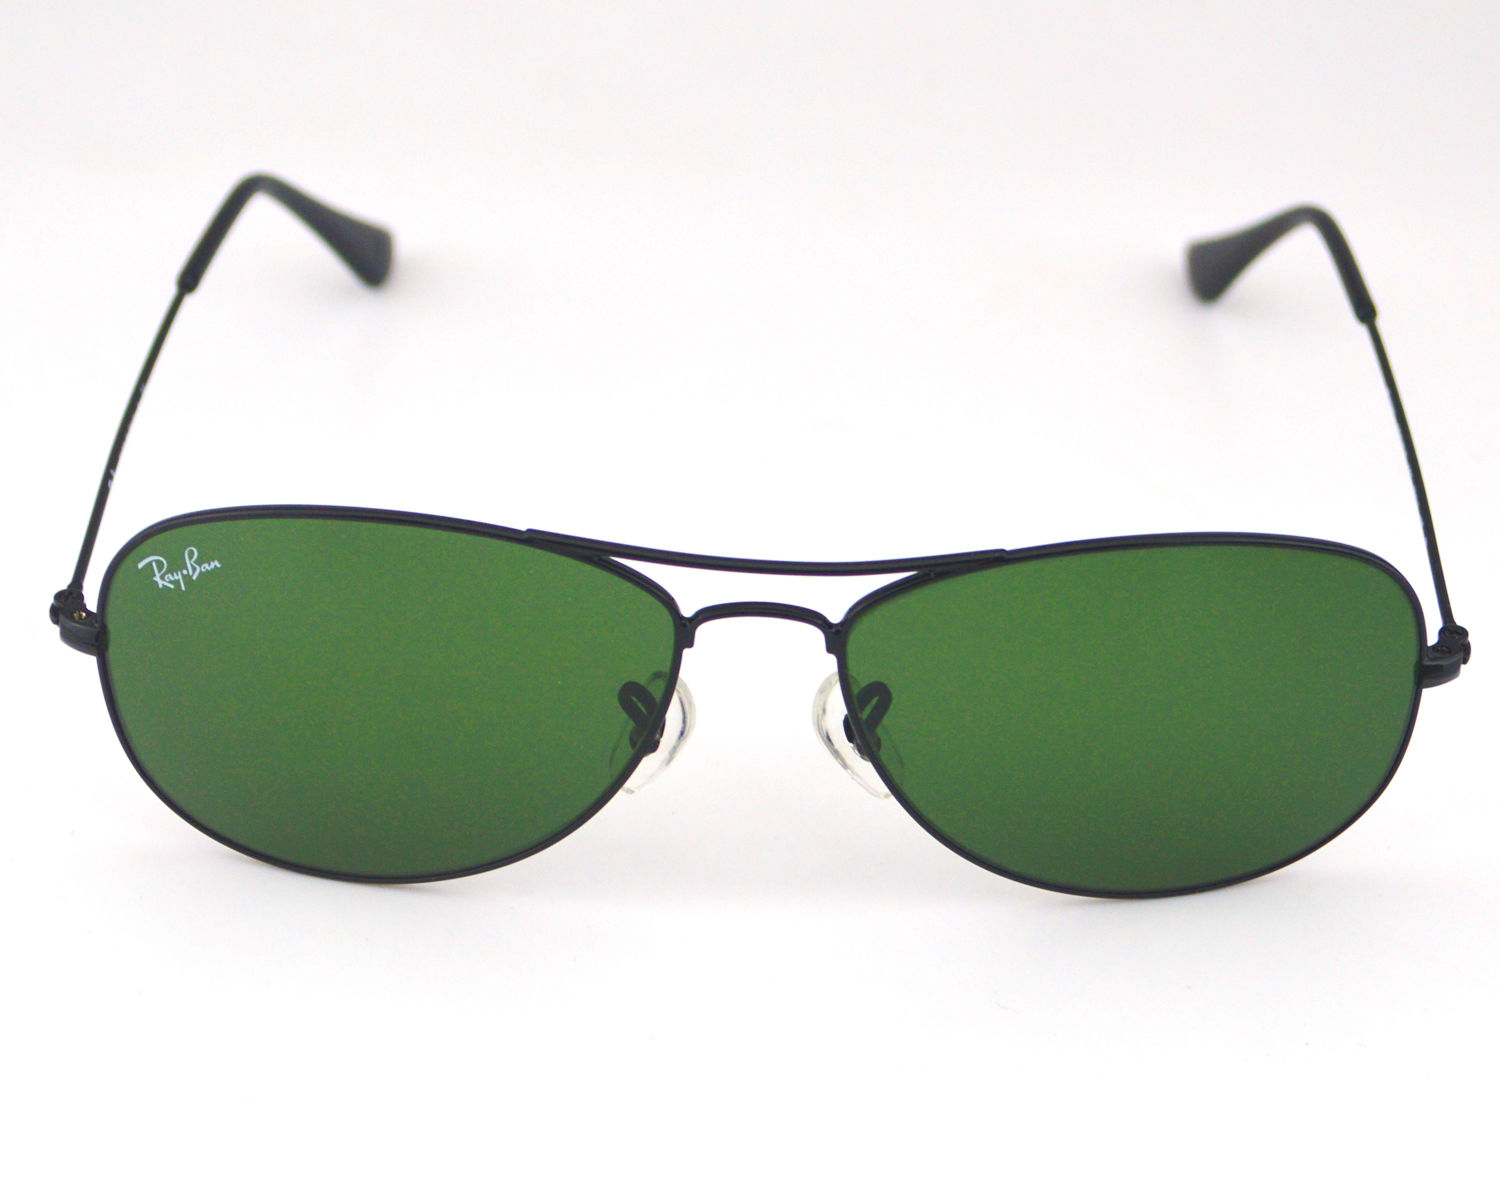 8a5d2e0f47 netherlands ray ban rb 3362 cockpit 002 black gunmetal green classic g 15  glass lens unisex